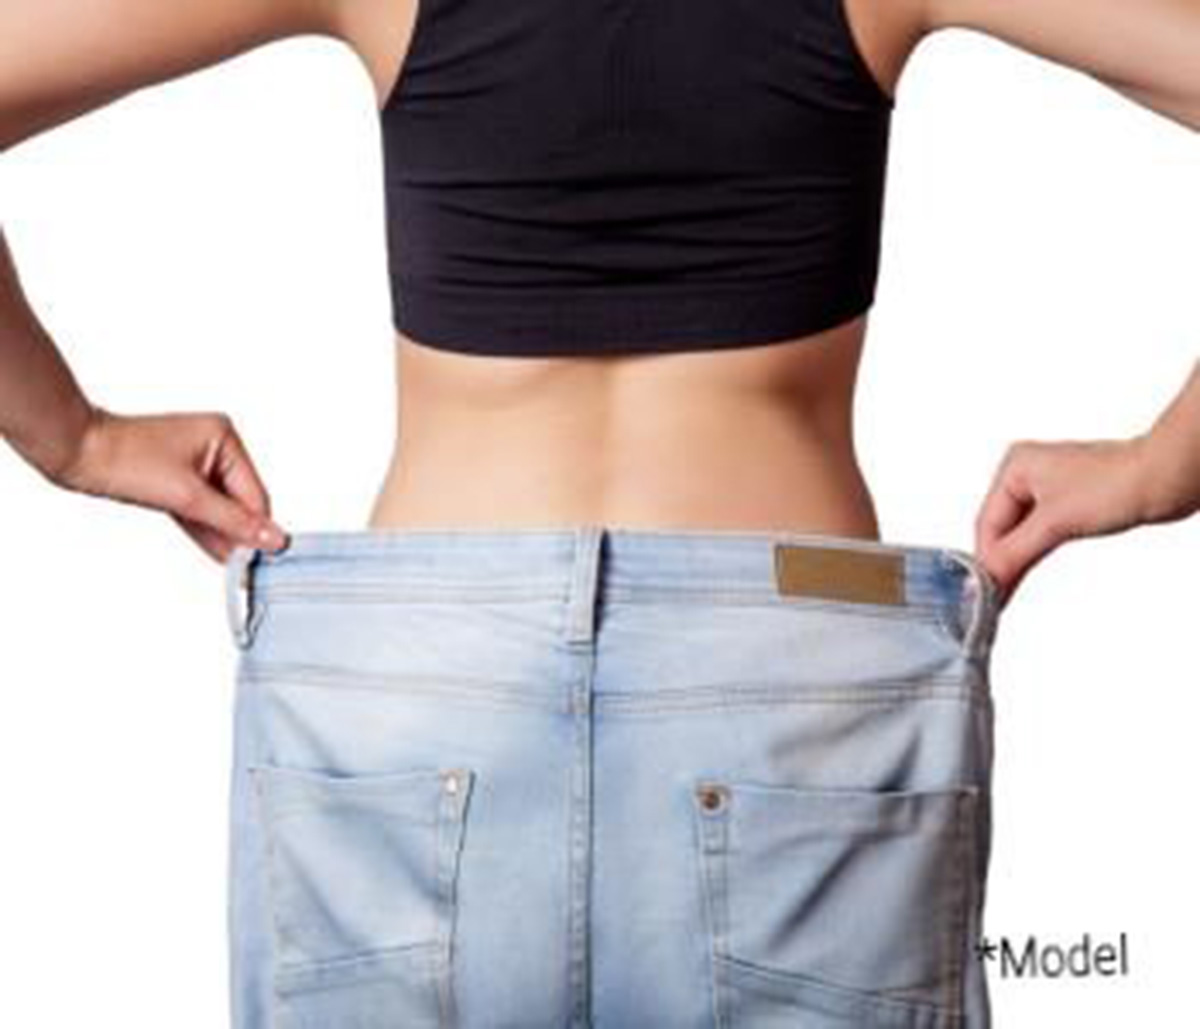 Extreme transformation resulting tummy tuck procedure from plastic surgeon in Beverly Hills